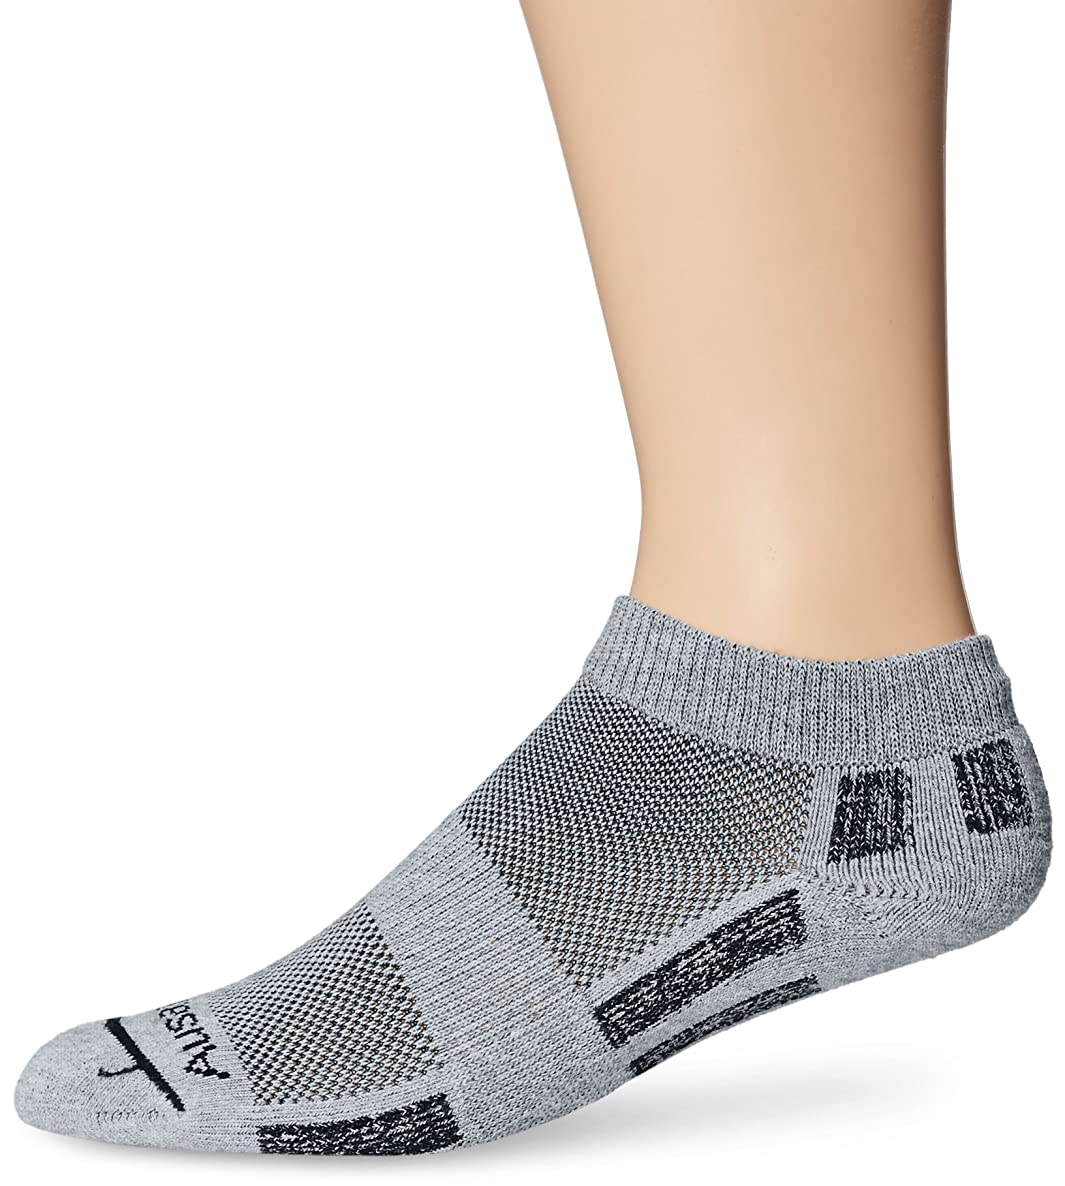 Ausangate Alpacor Quarter Crew Socks For Men